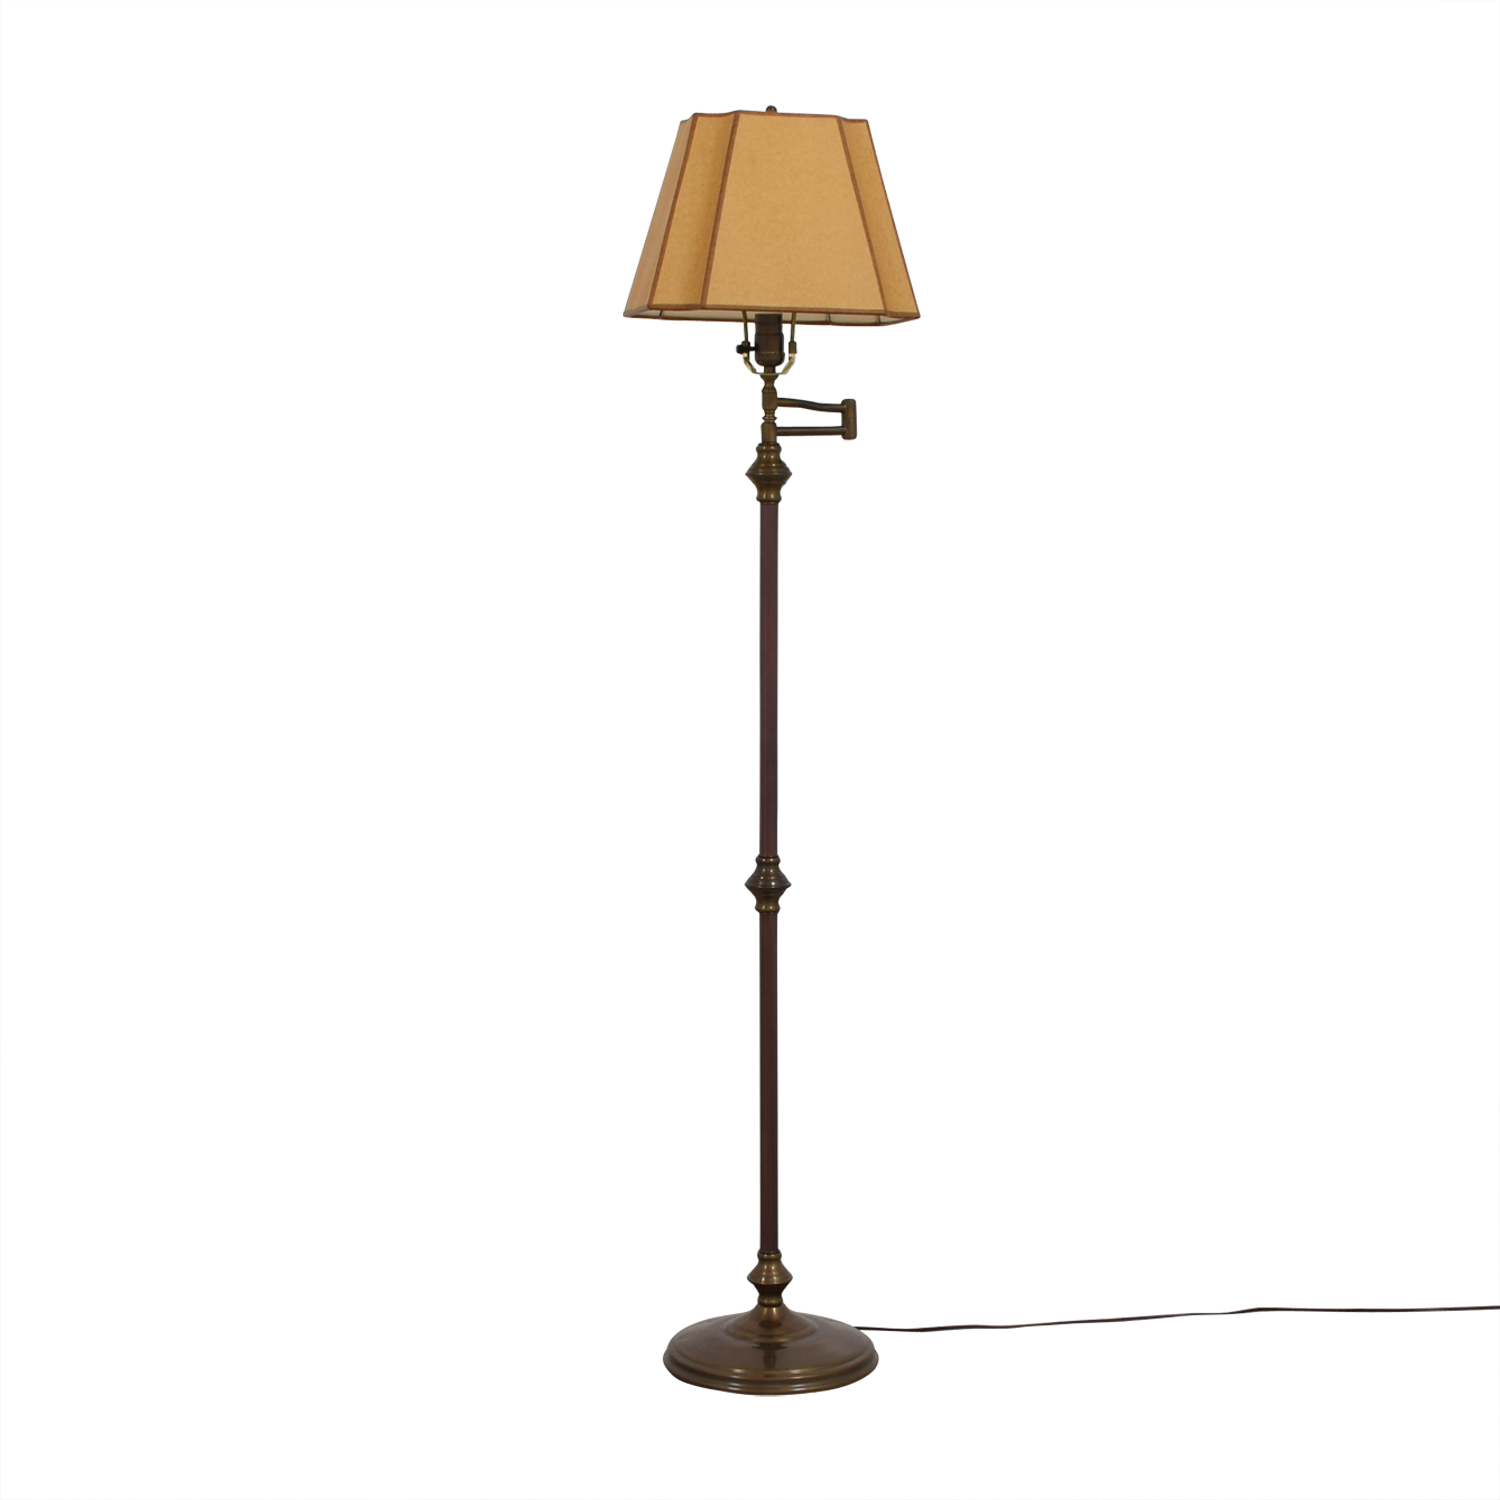 los angeles furniture metal orange floor red with lamp italian shade products